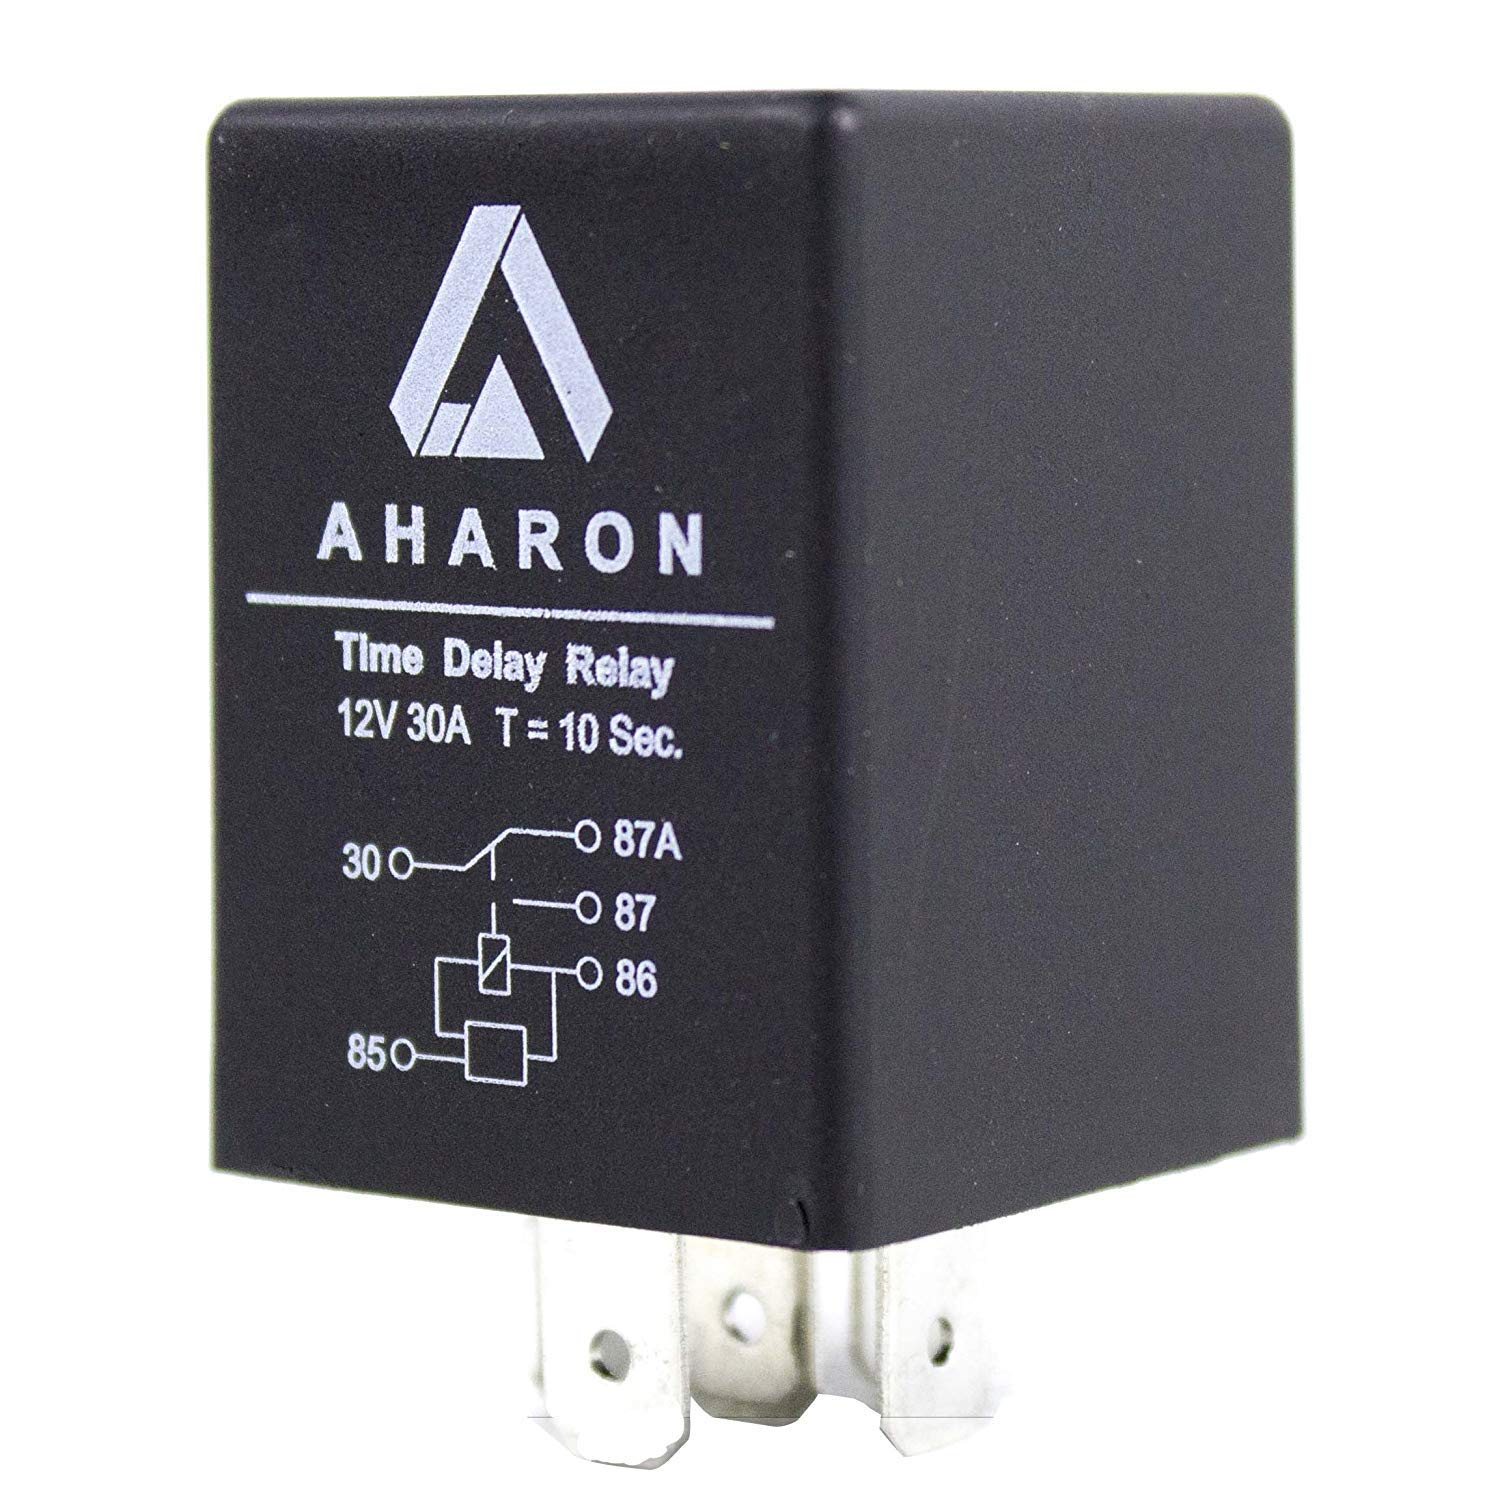 Time Delay Relay 10 Seconds 5 pin 12V 30A 5 pin SPDT